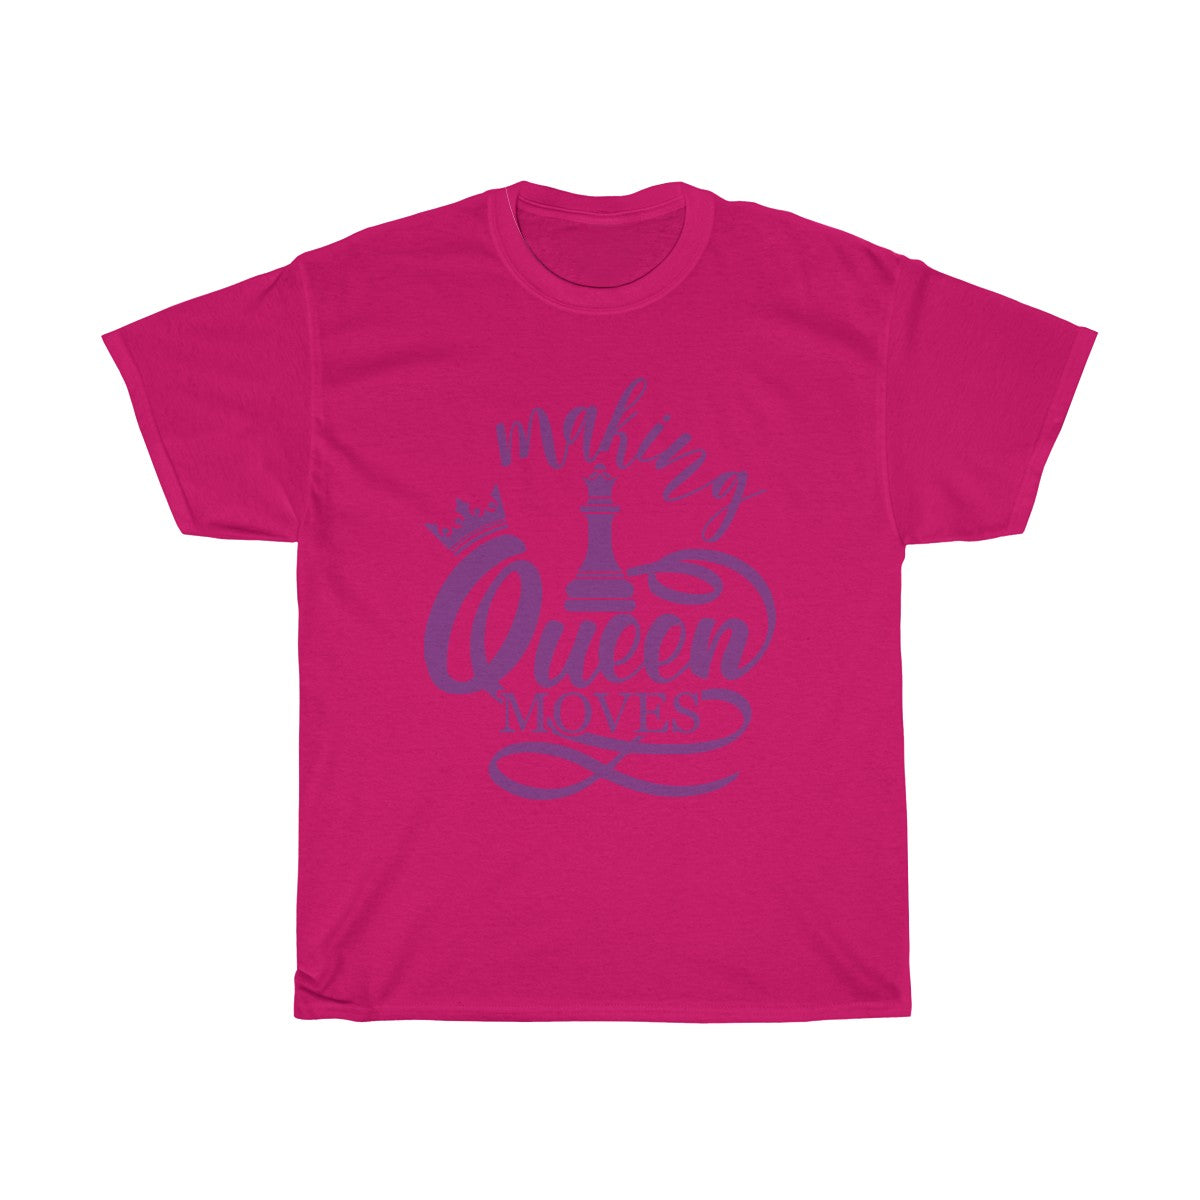 Making Queen Moves T-Shirt